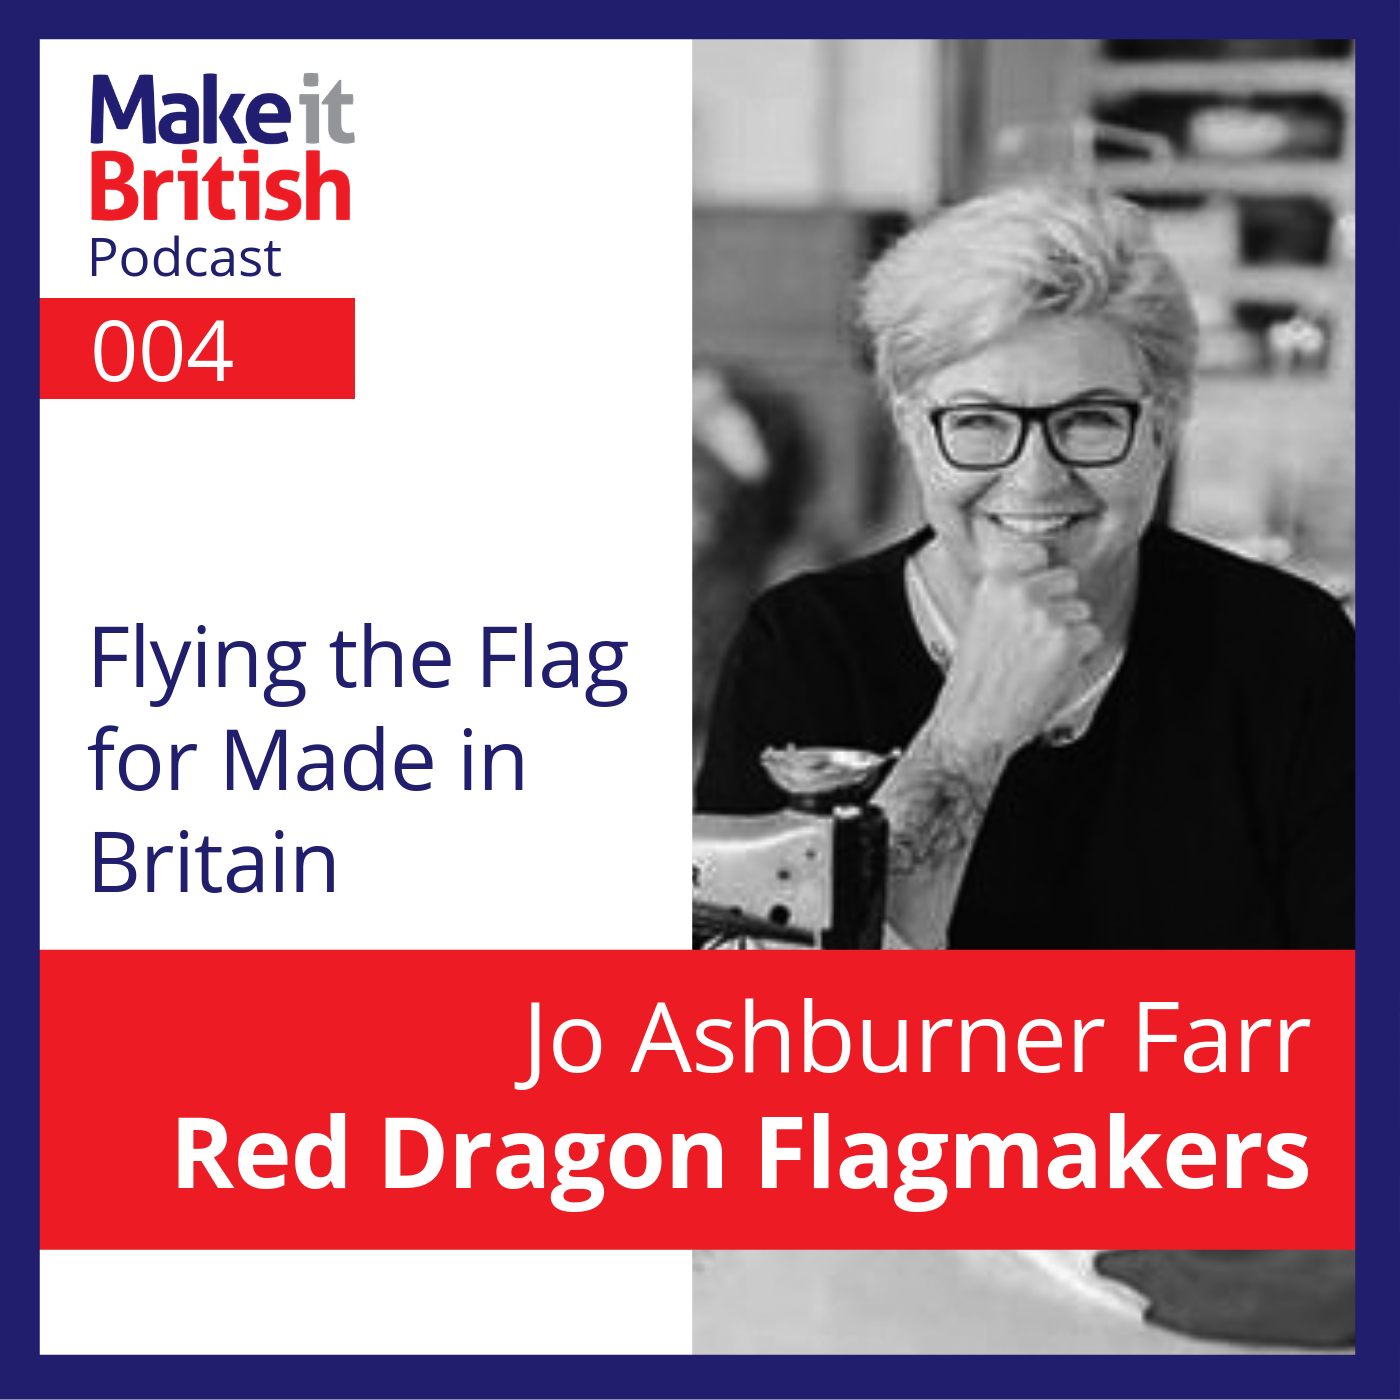 Jo Ashburner Farr Red Dragon Flagmakers